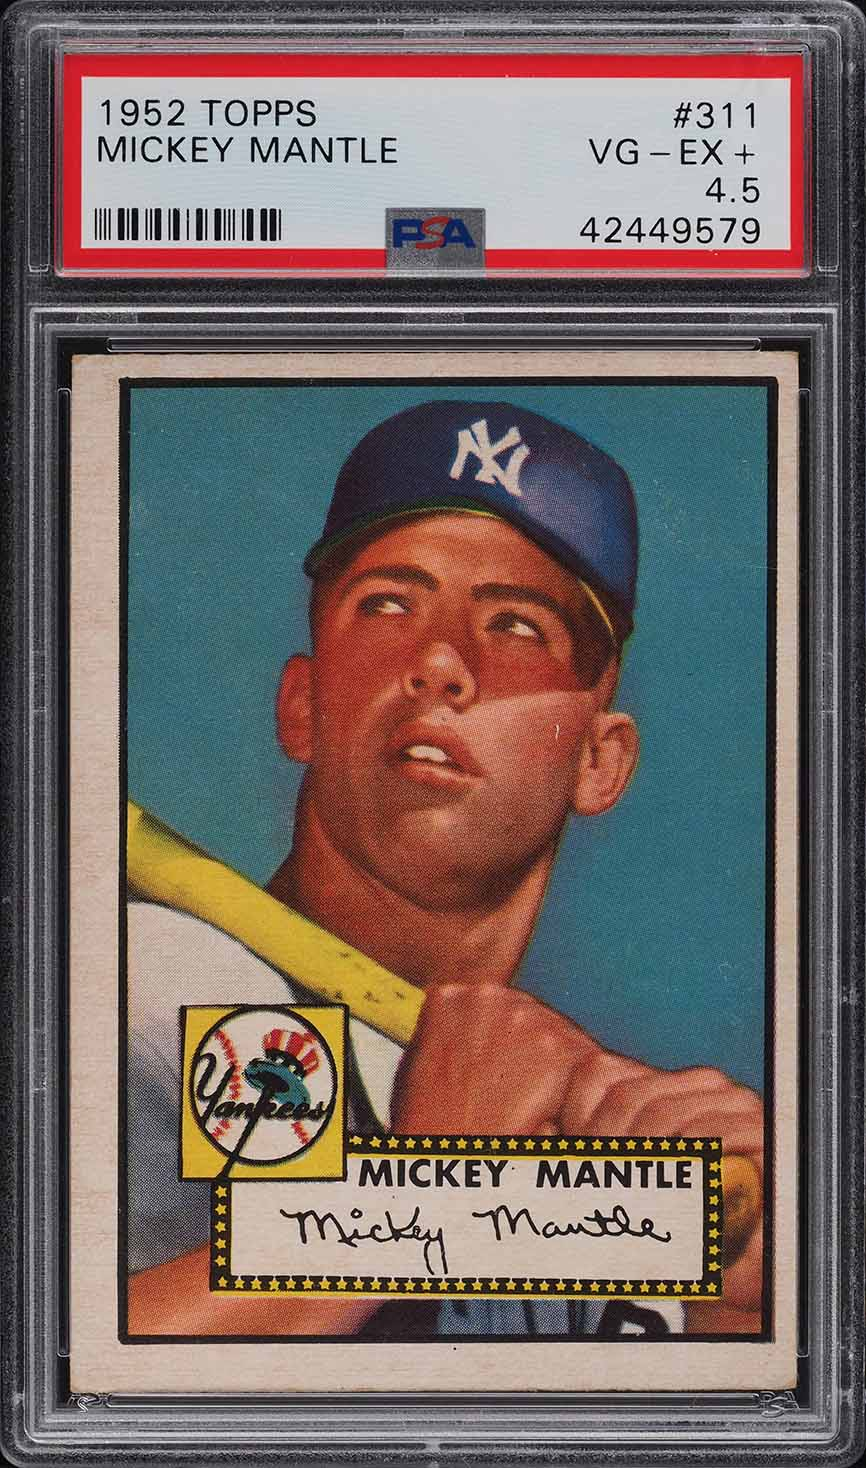 1952 Topps Mickey Mantle #311 PSA 4.5 VGEX+ - Image 1